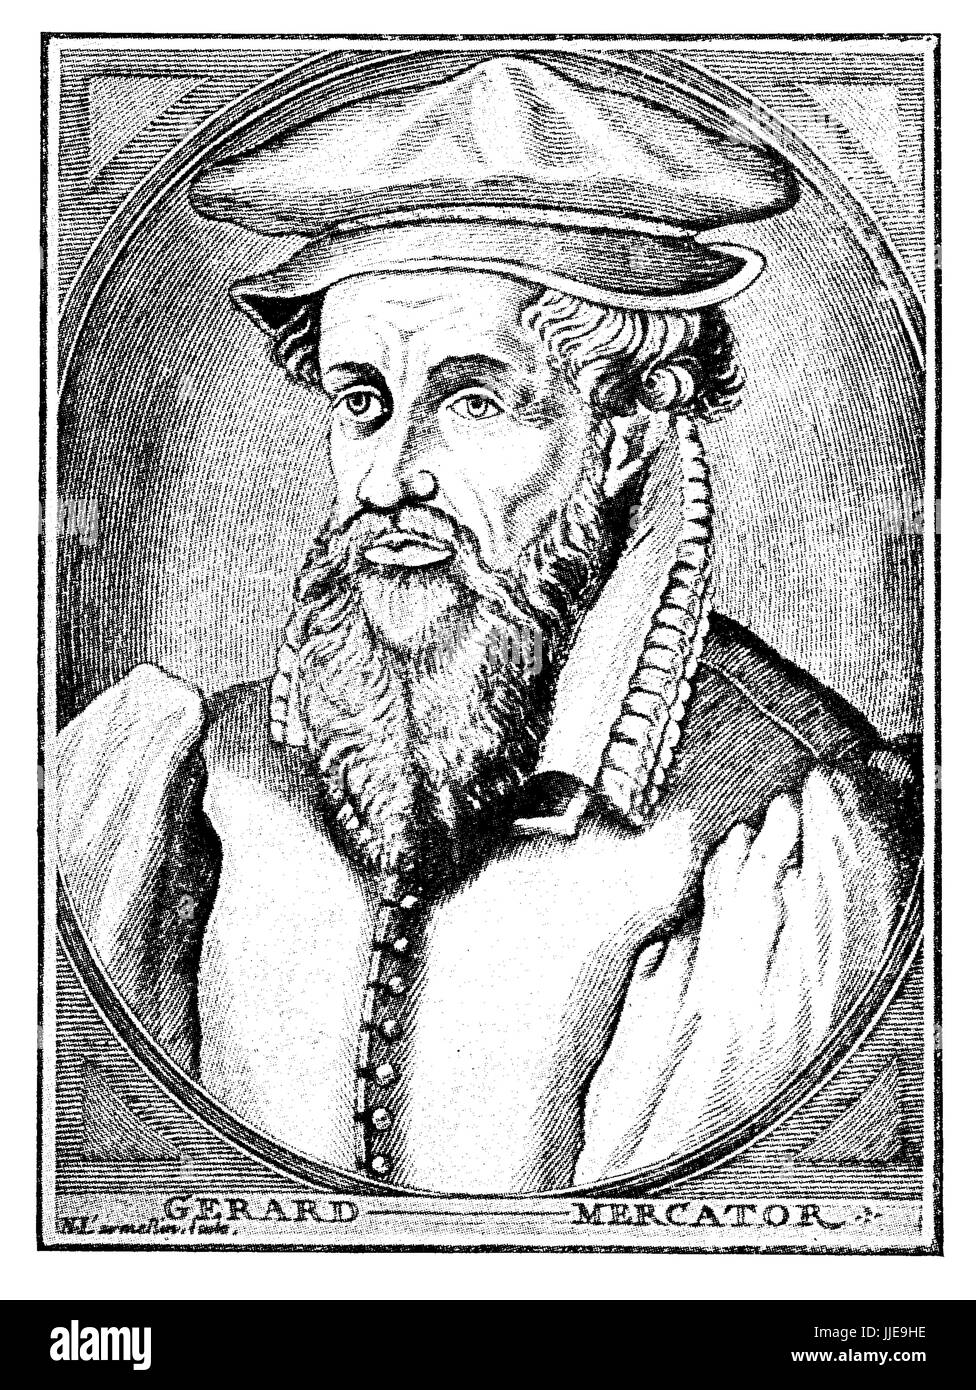 Portrait of Gerardus Mercator, german-flemish carthografer,created in 1569 the first world map with a new projection - Stock Image